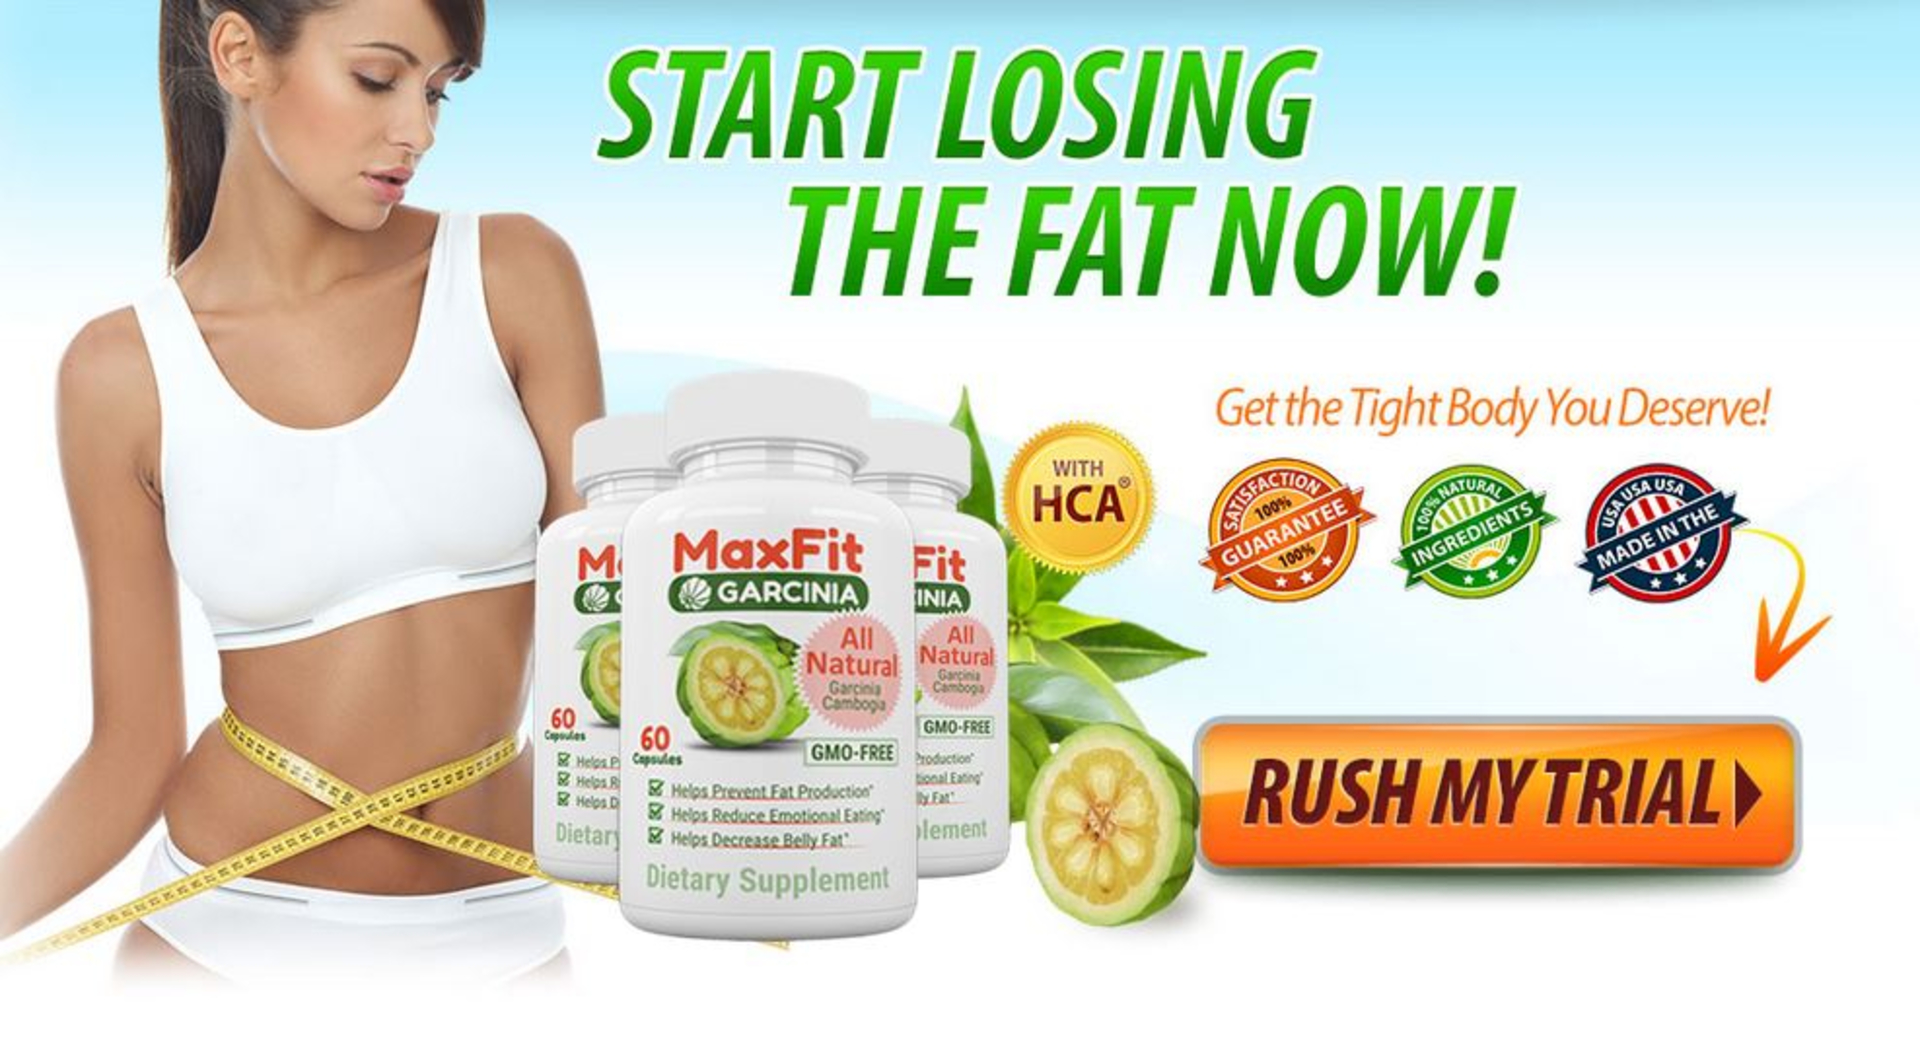 4 Top Questions That Are Commonly Asked About the Maxfit Garcinia image